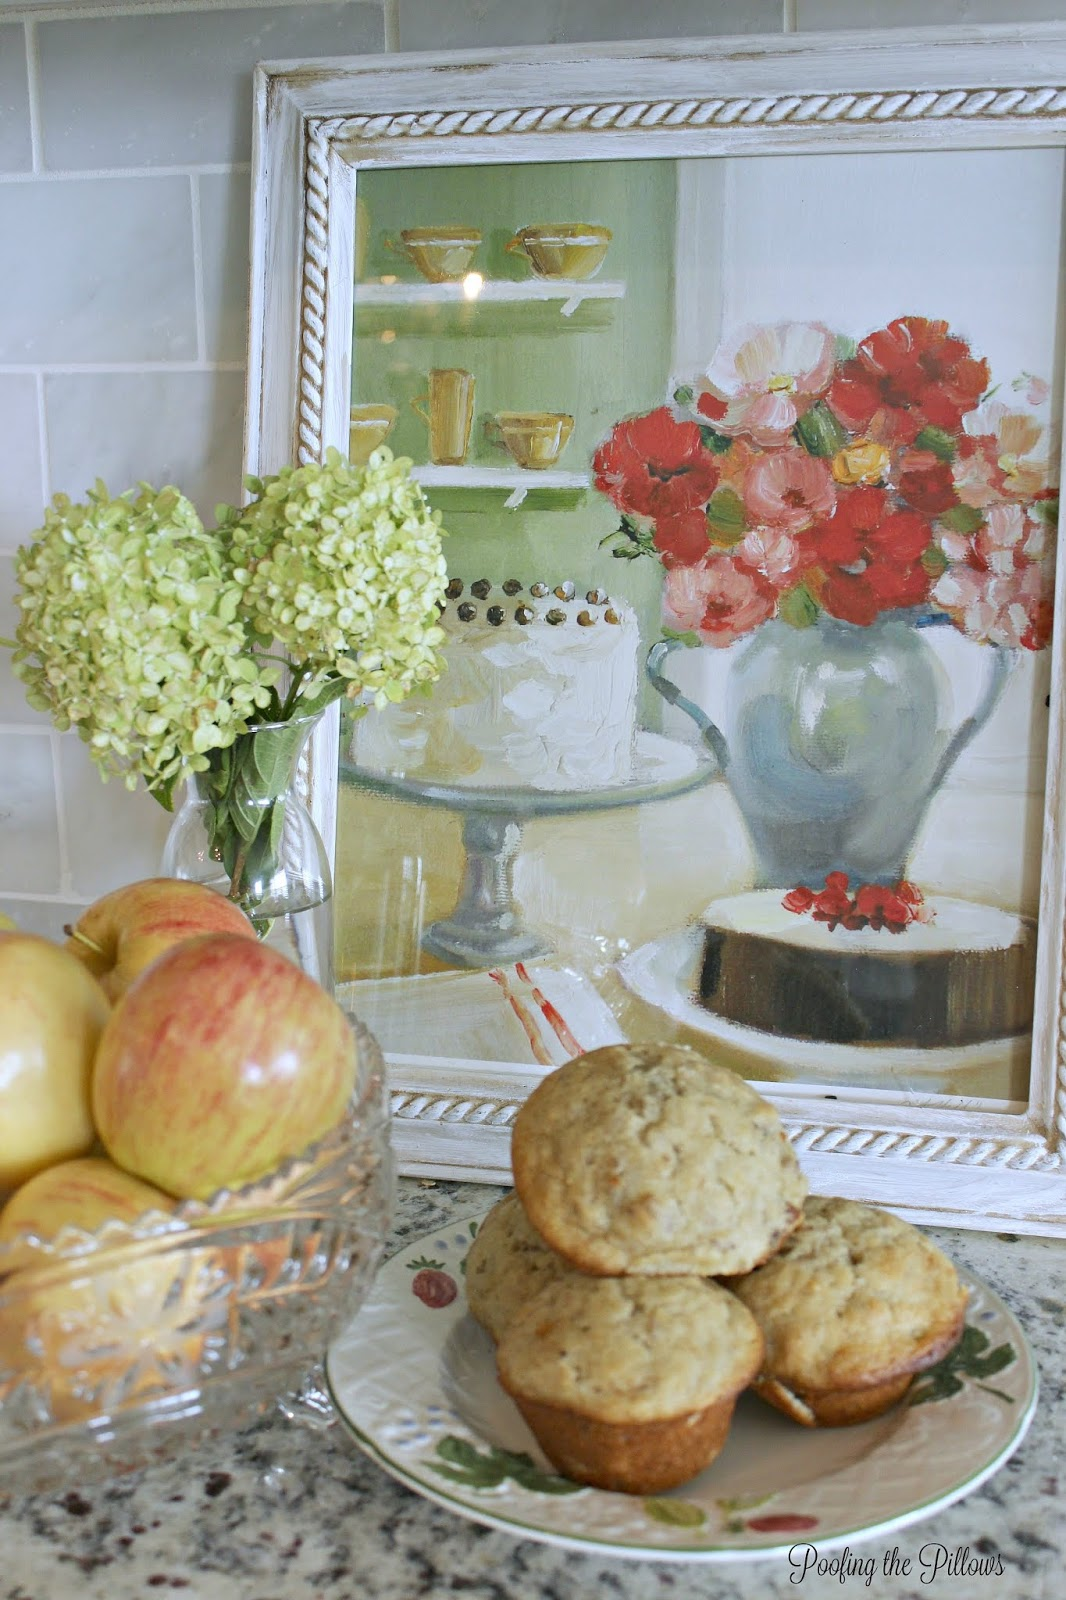 kitchen vignettes with art and fruit. still life.